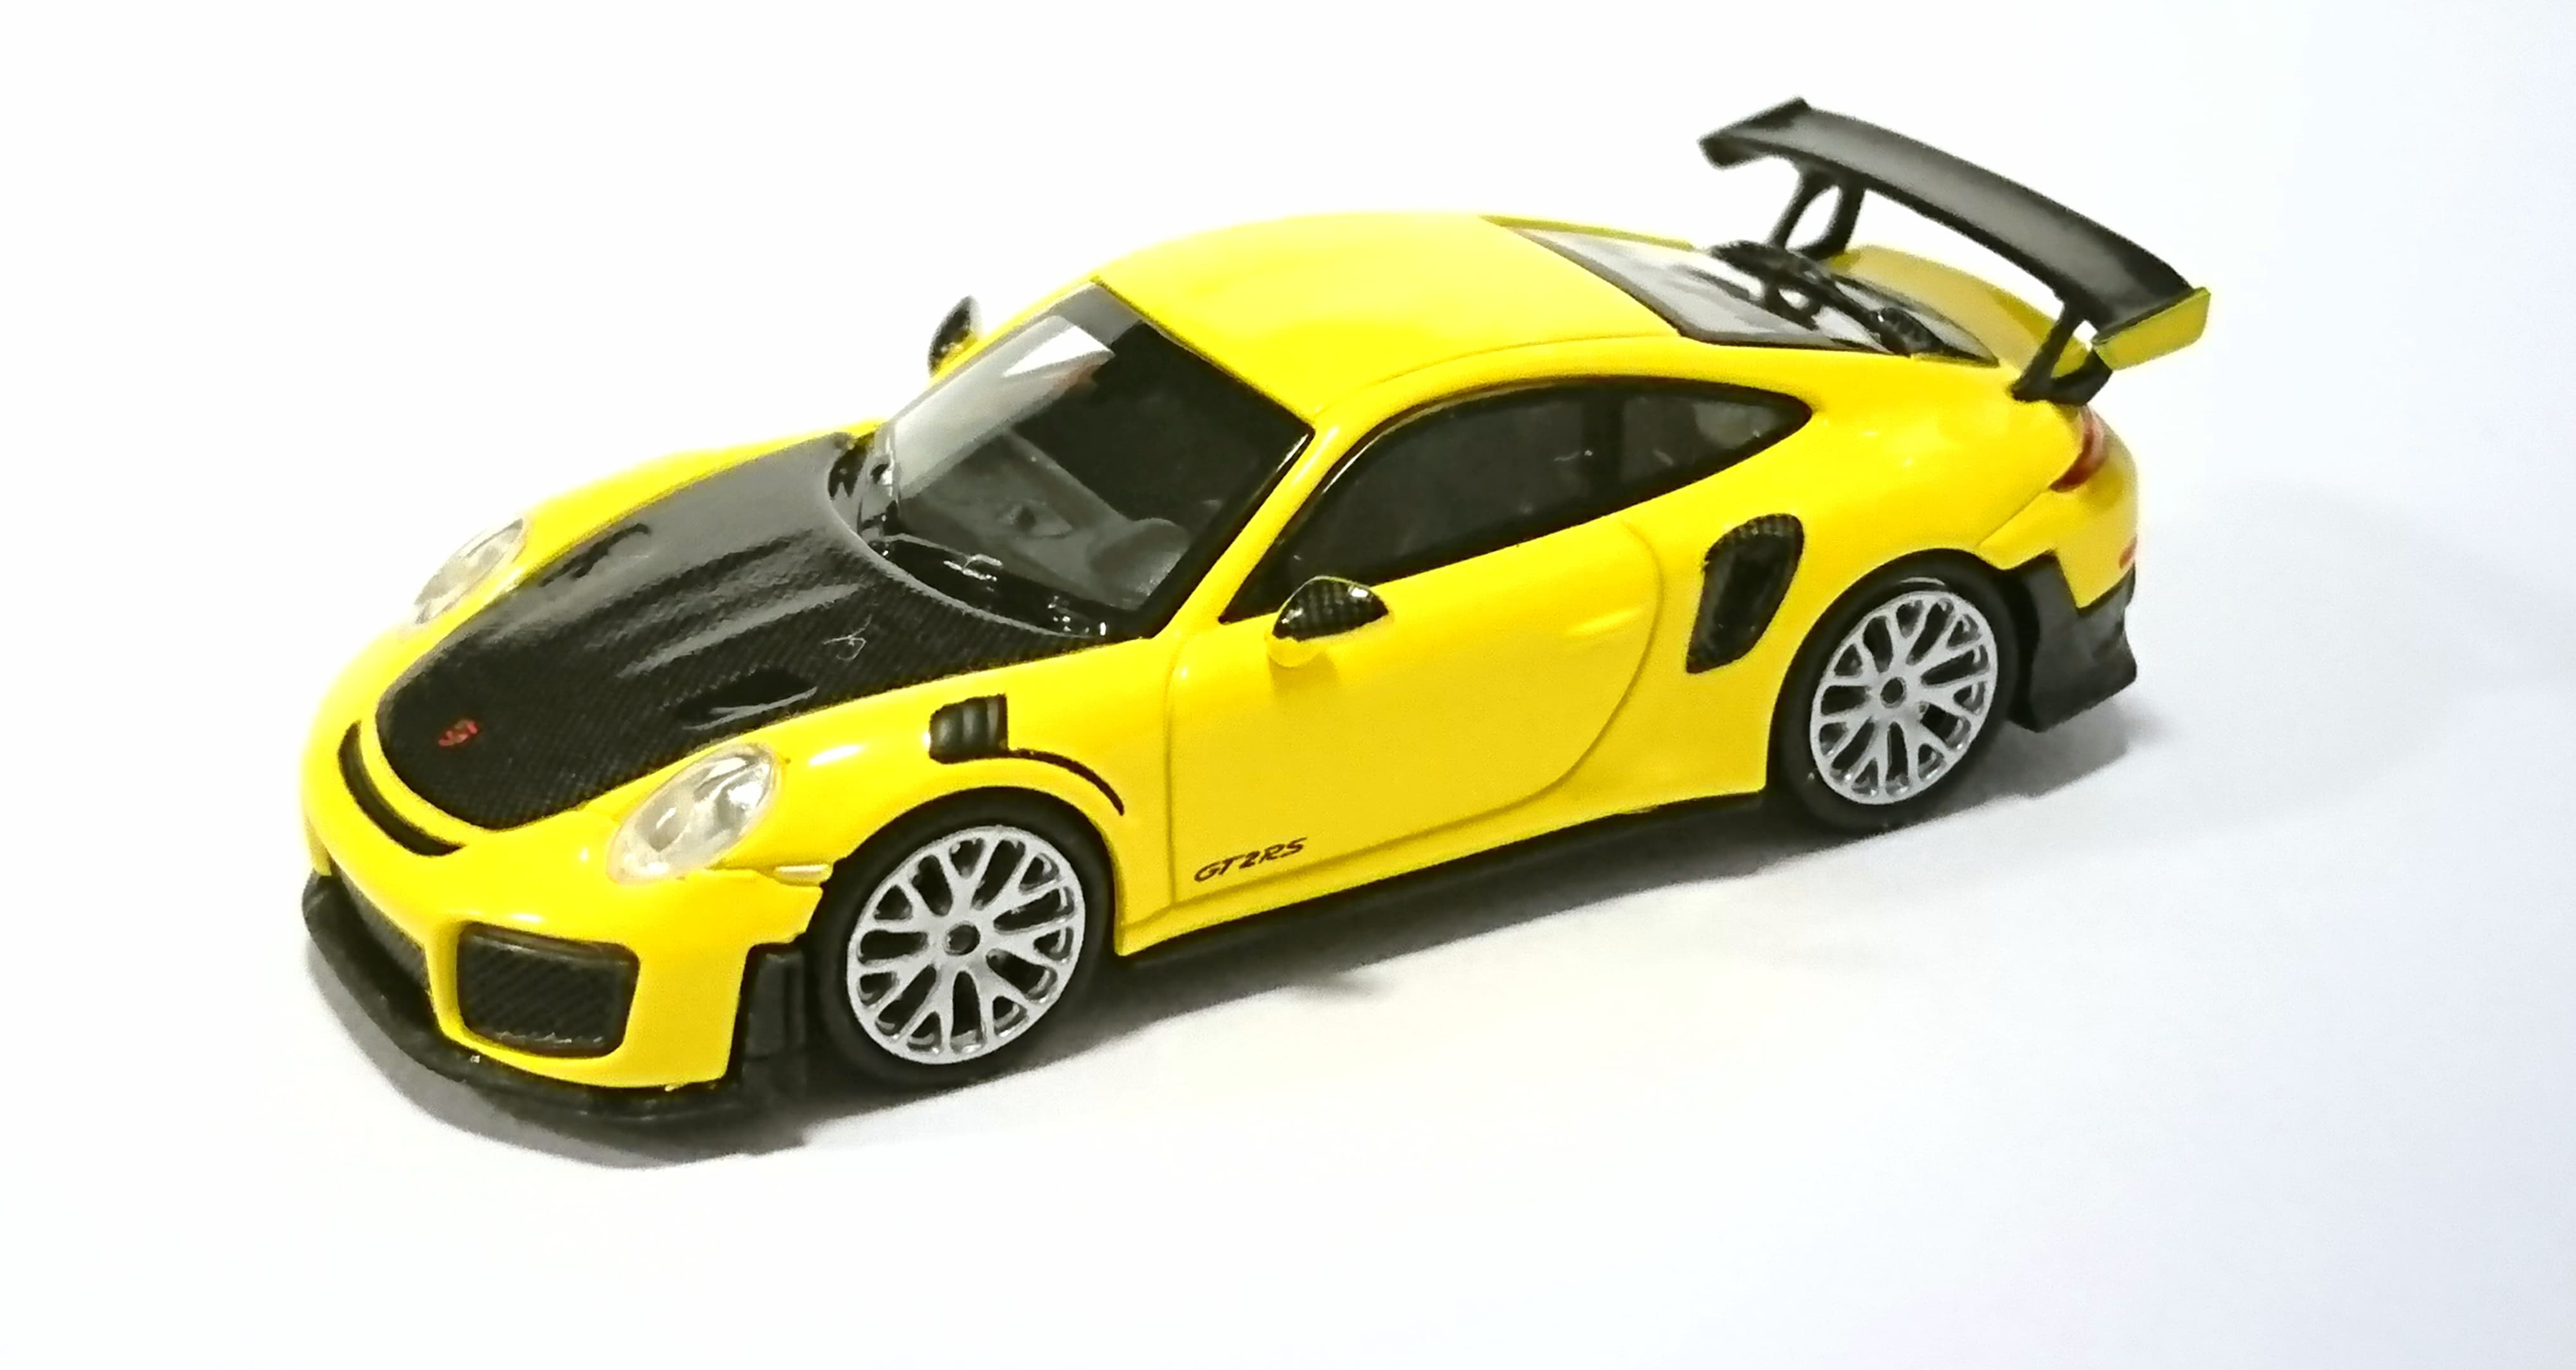 Minichamps 1 87 Porsche 911 Gt2 Rs 2018 Yellow W Carbon Bonnet Daboxtoys Model Cars Dmc